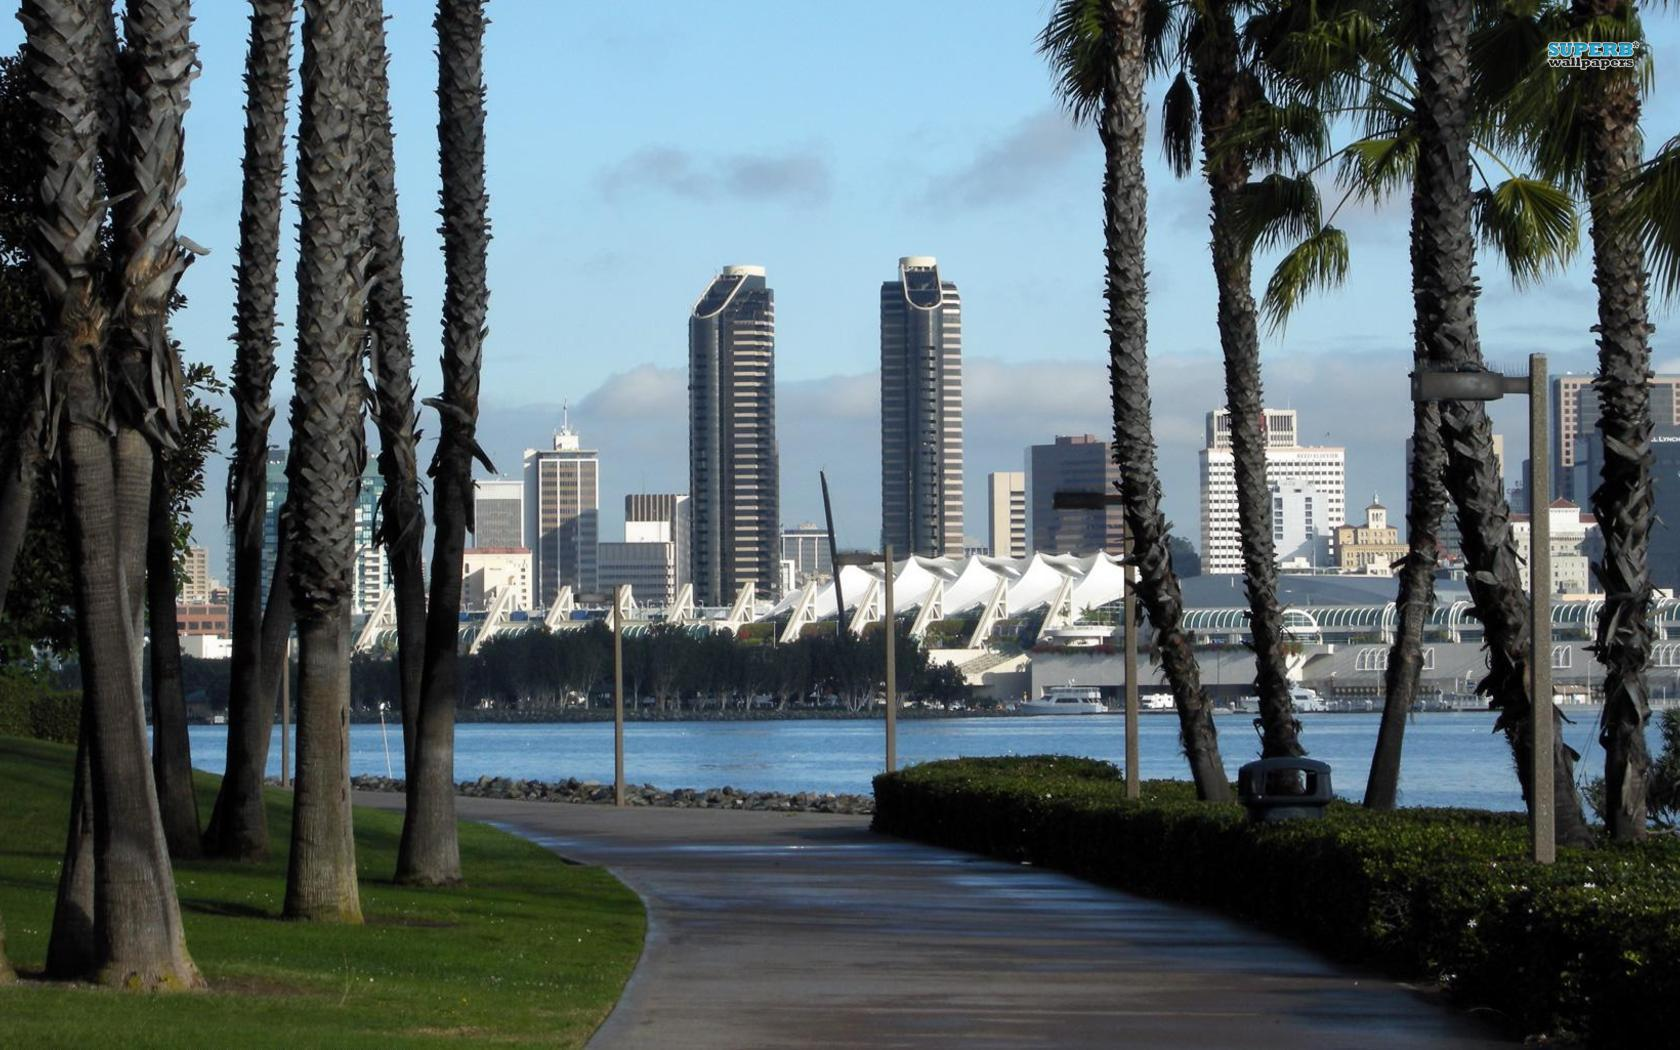 San Diego HD Wallpaper Free Download | HD Free Wallpapers Download